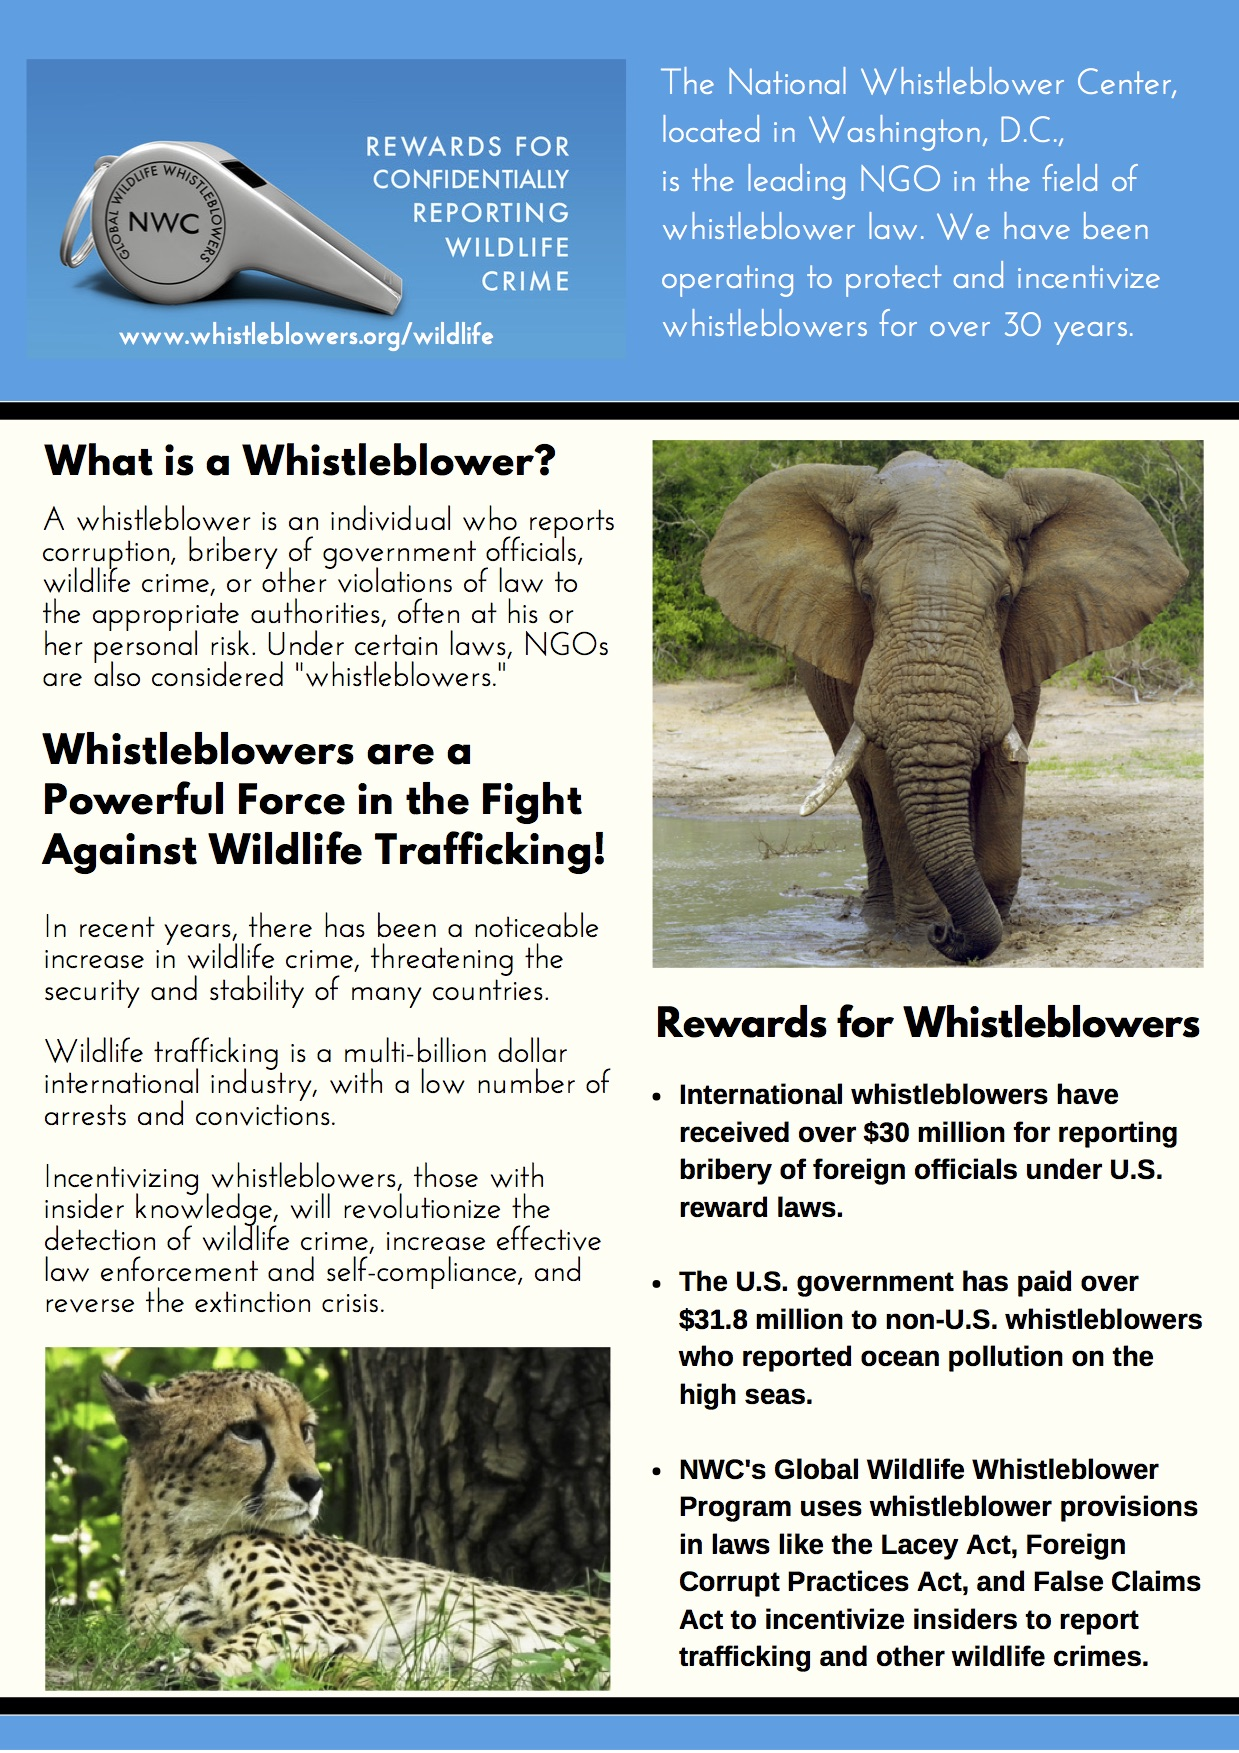 Global Wildlife Whistleblower Program Overview copy